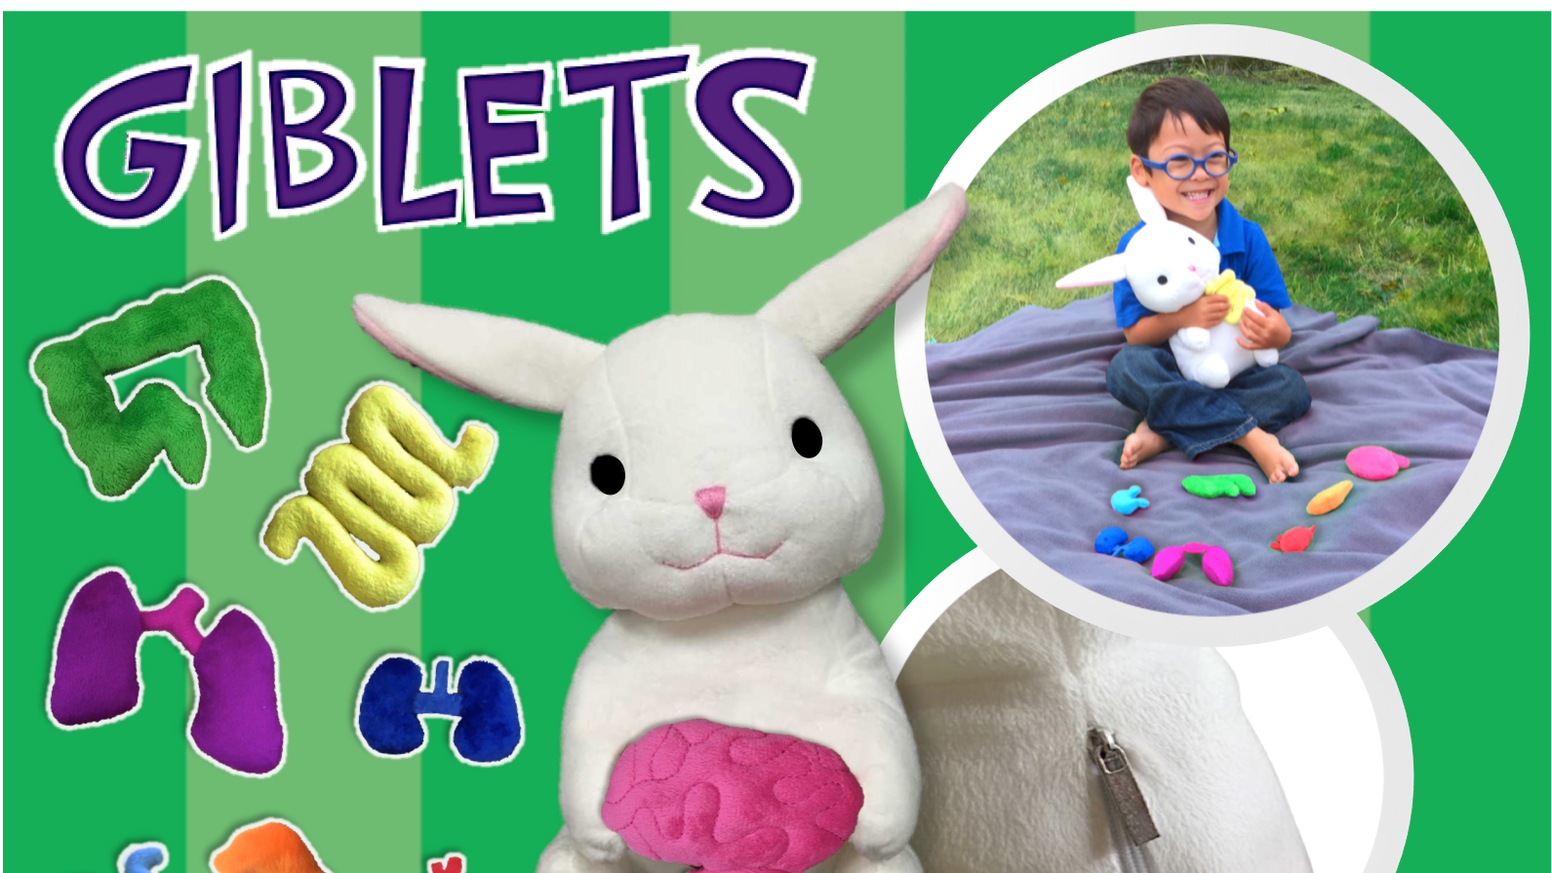 Giblets: The Anatomy Bunny Childrens Learning Toy by Emily Zebala ...